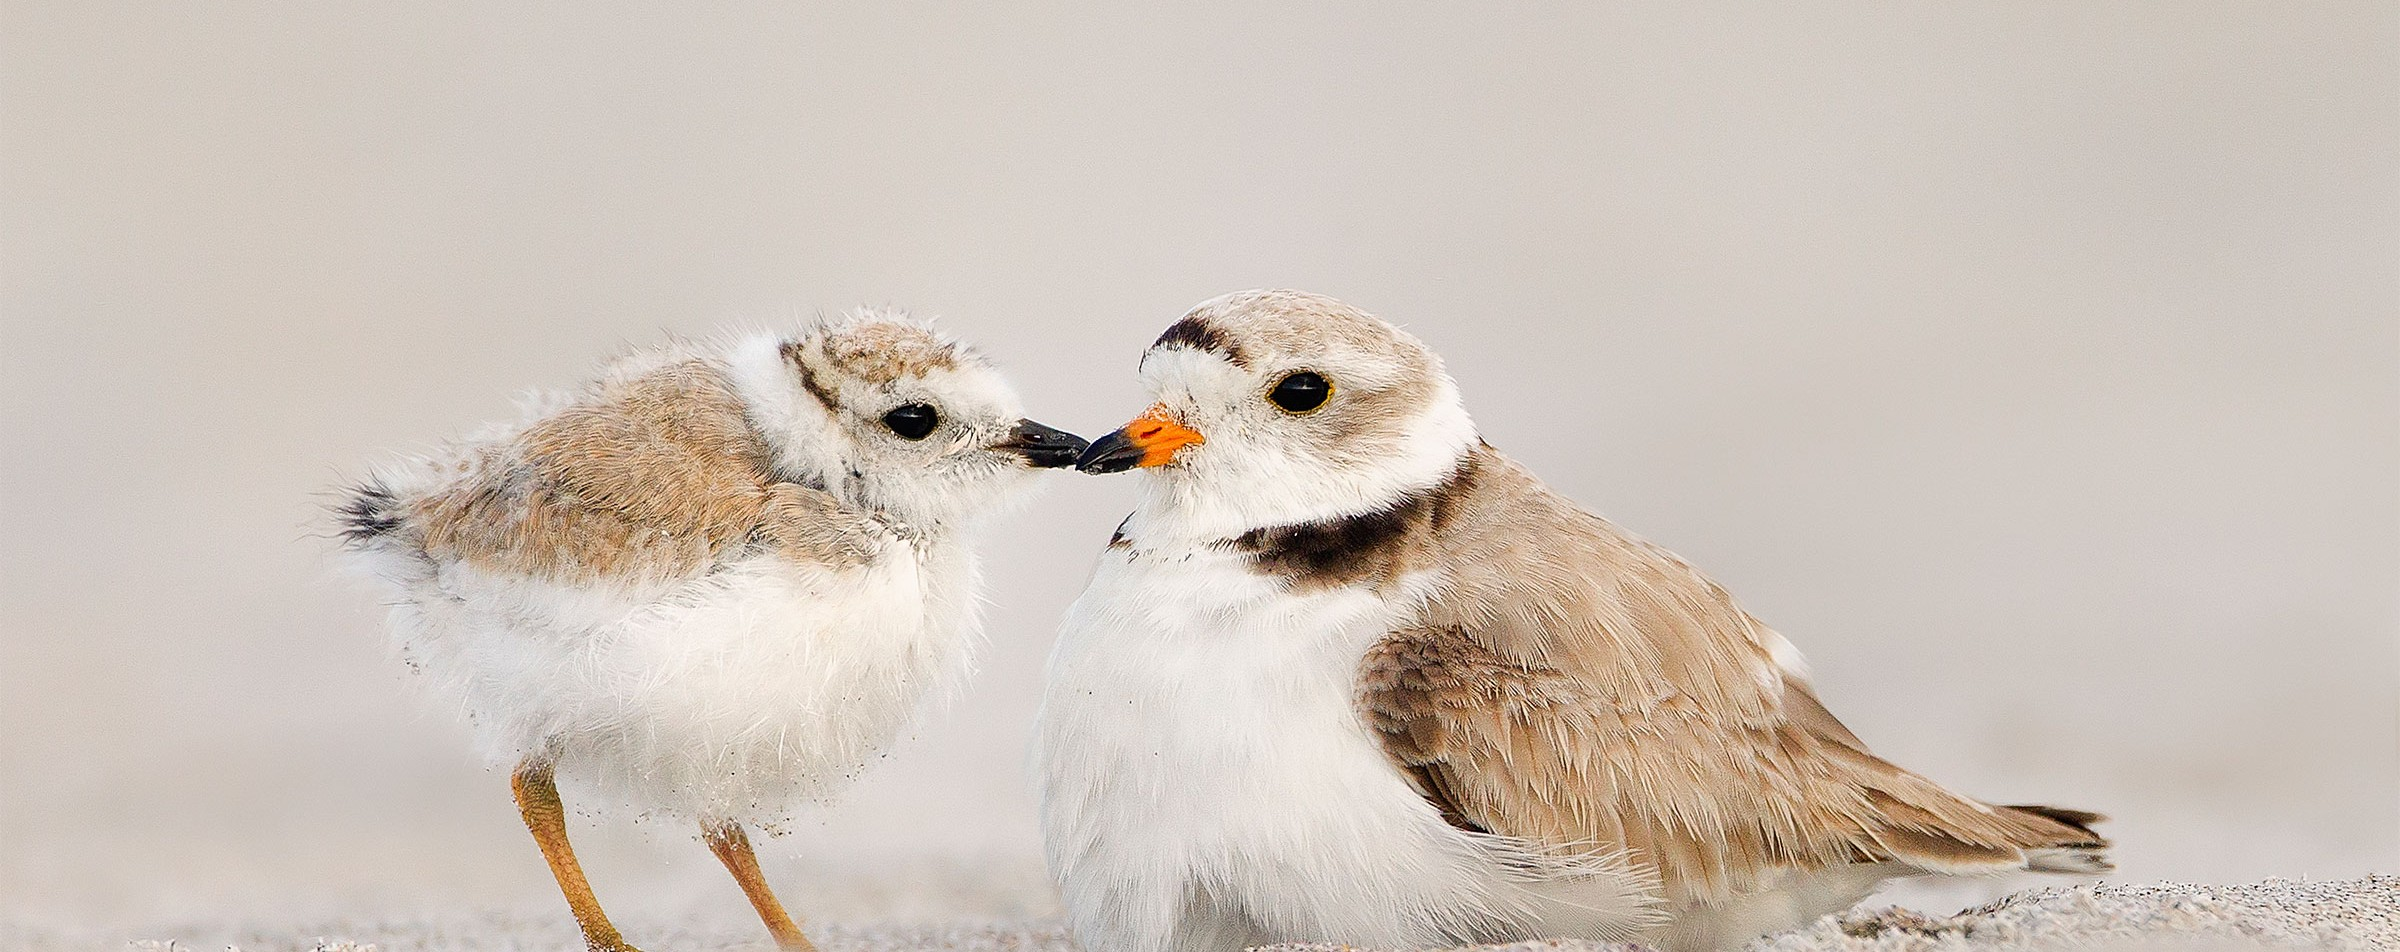 Piping Plovers. Photo: Melissa Groo/Audubon Photography Awards